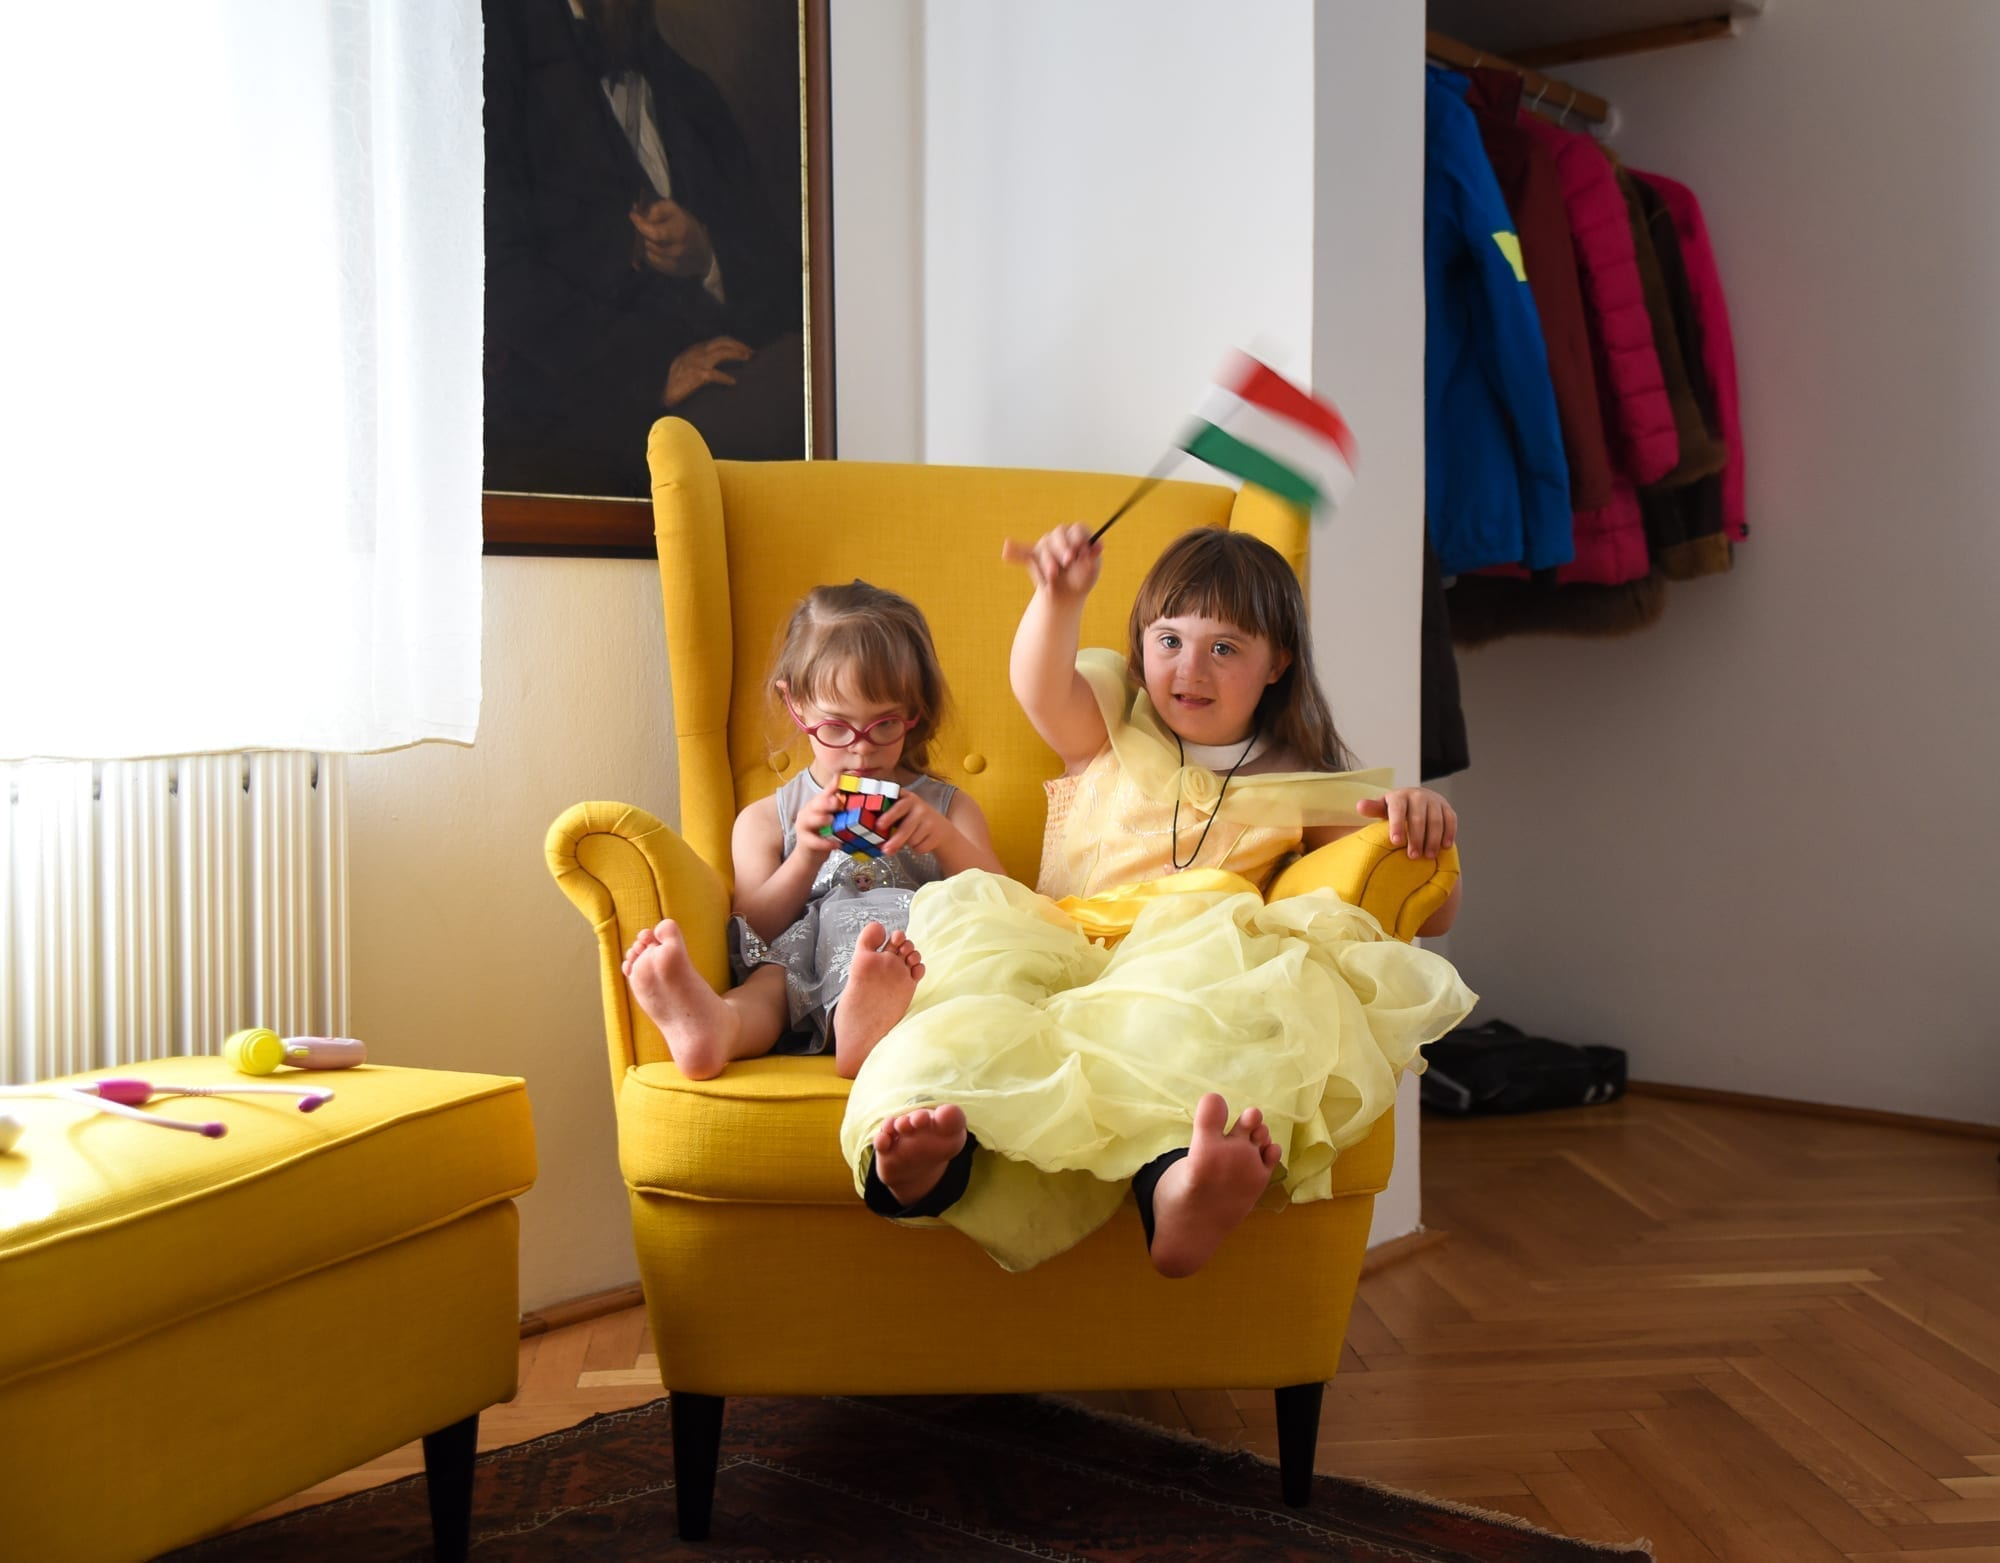 two girls sit on a chair and play with a rubix cube one is waving a hungarian flag